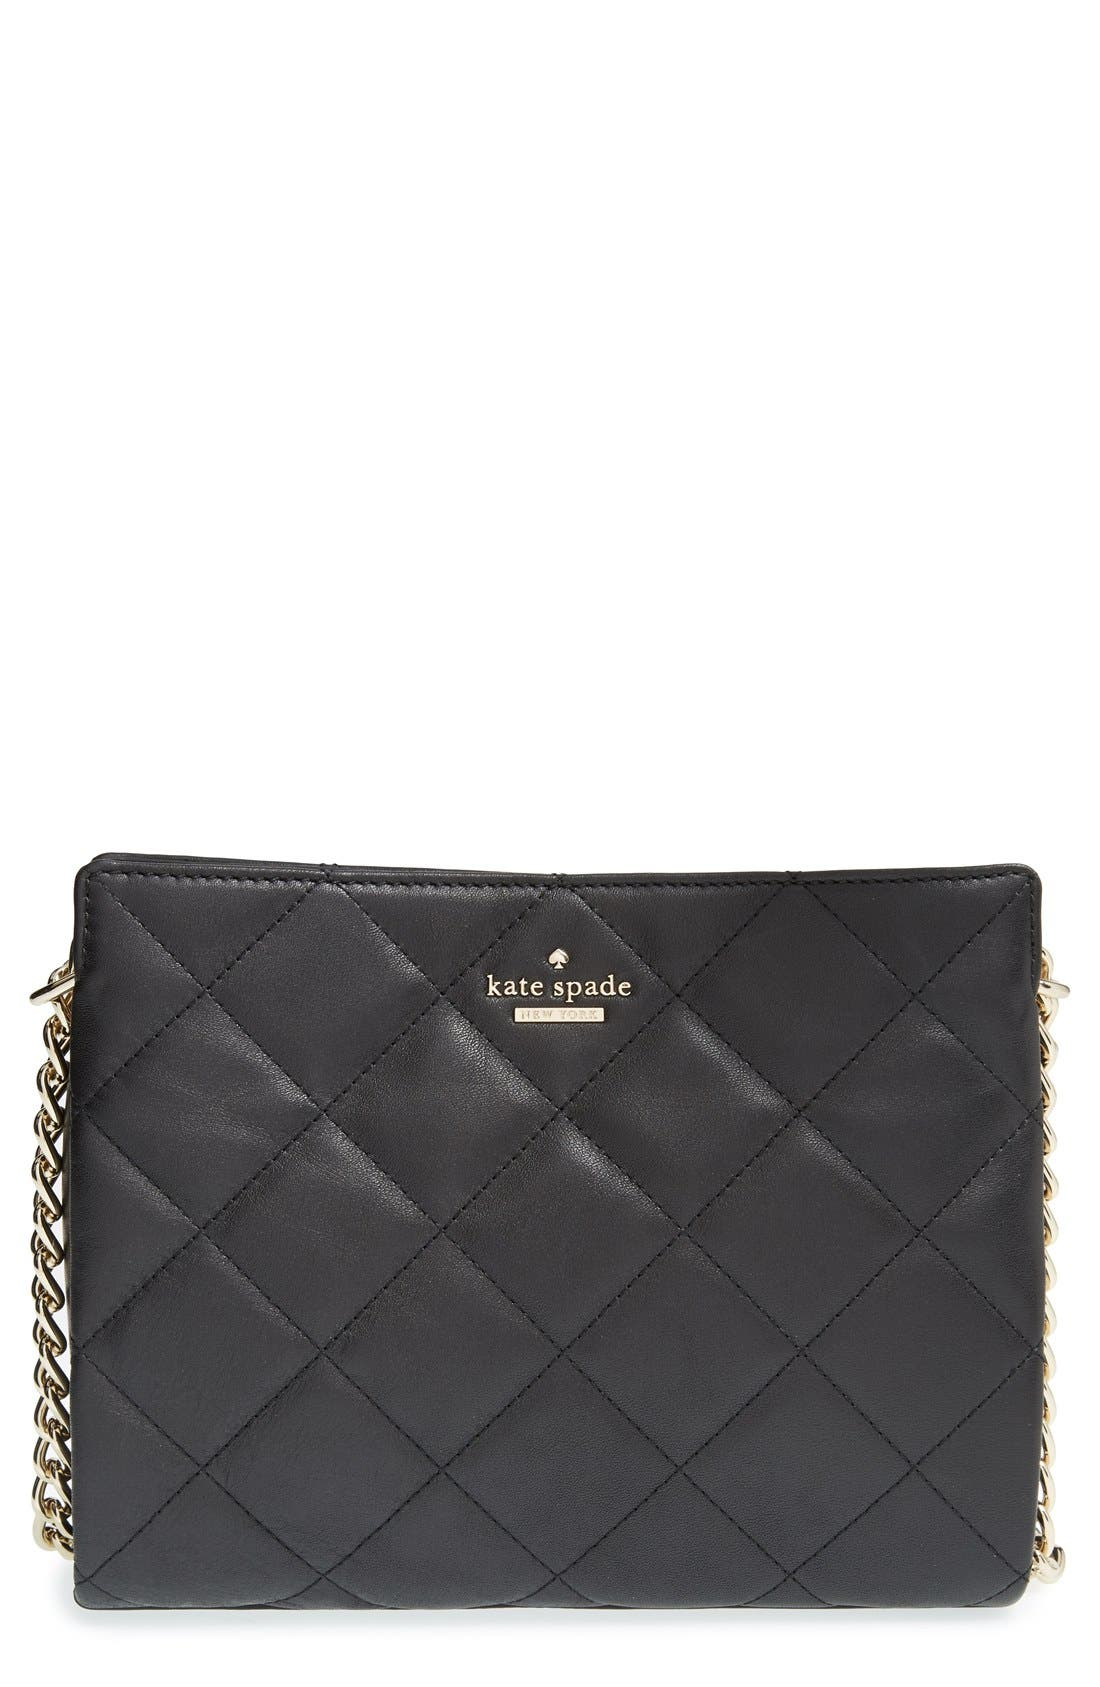 Alternate Image 1 Selected - kate spade new york 'emerson place - mini convertible phoebe' quilted leather shoulder bag